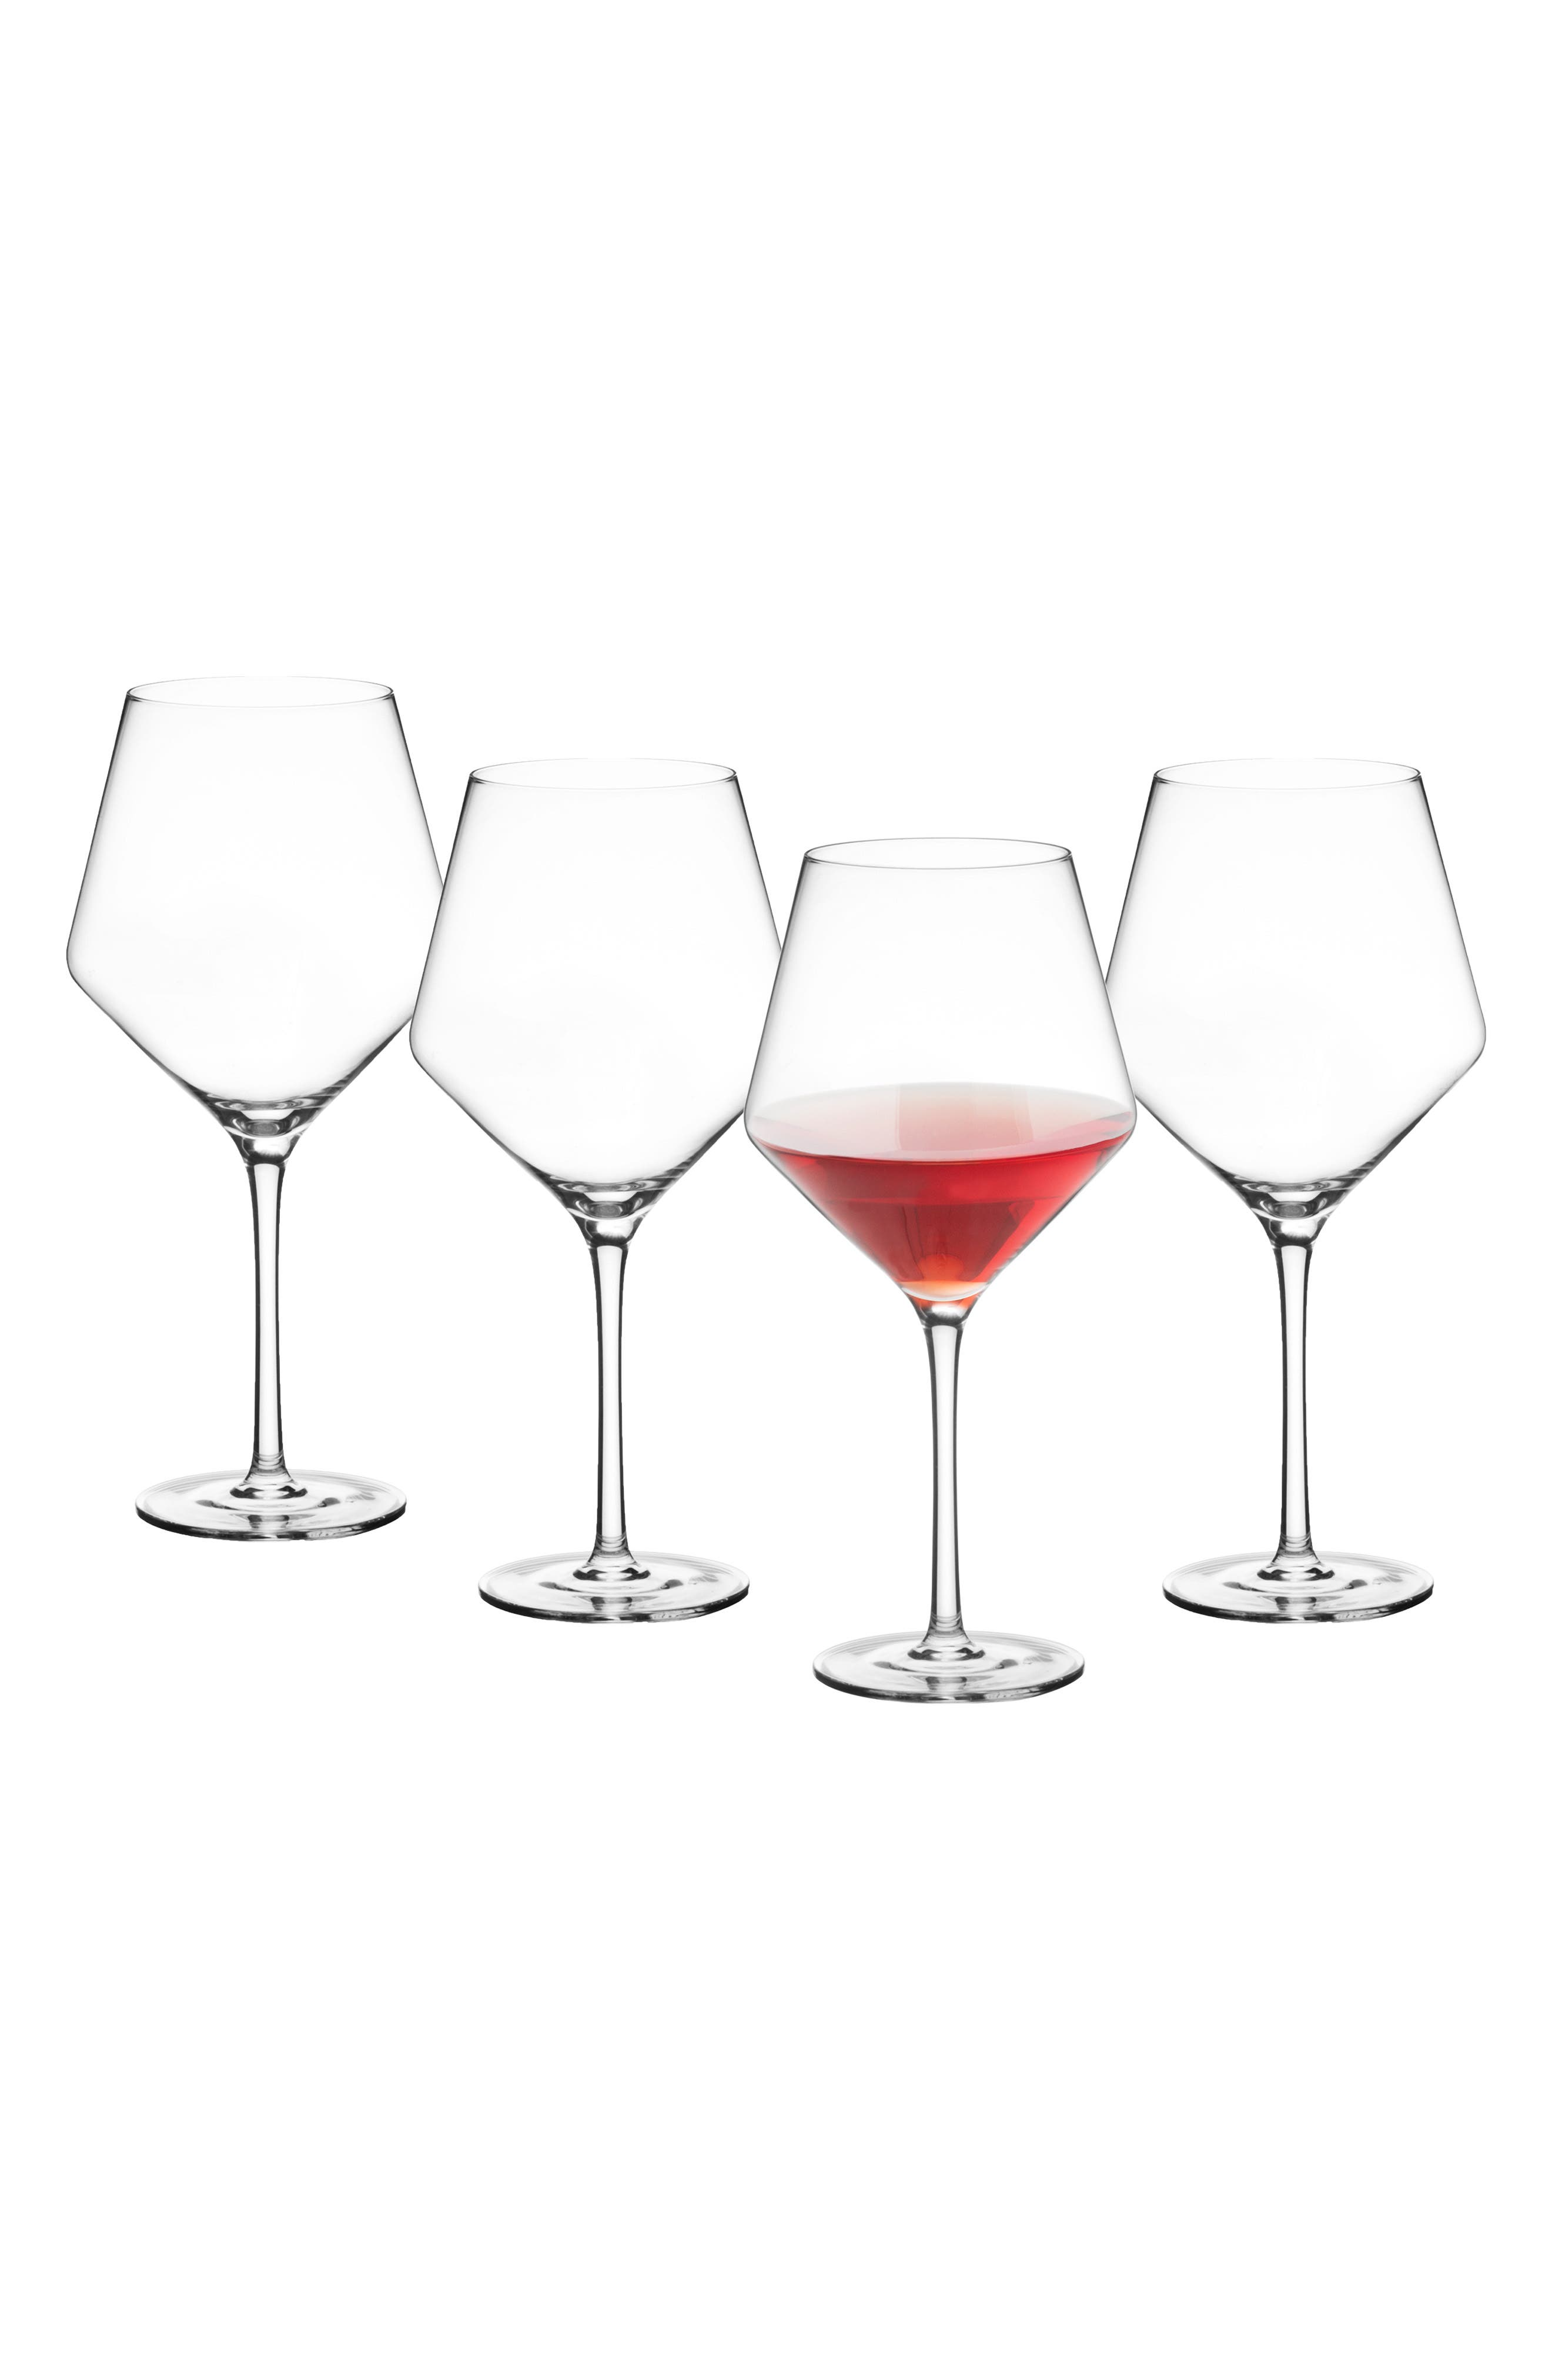 Estate Collection Set of 4 Monogram Red Wine Glasses,                             Main thumbnail 1, color,                             BLANK